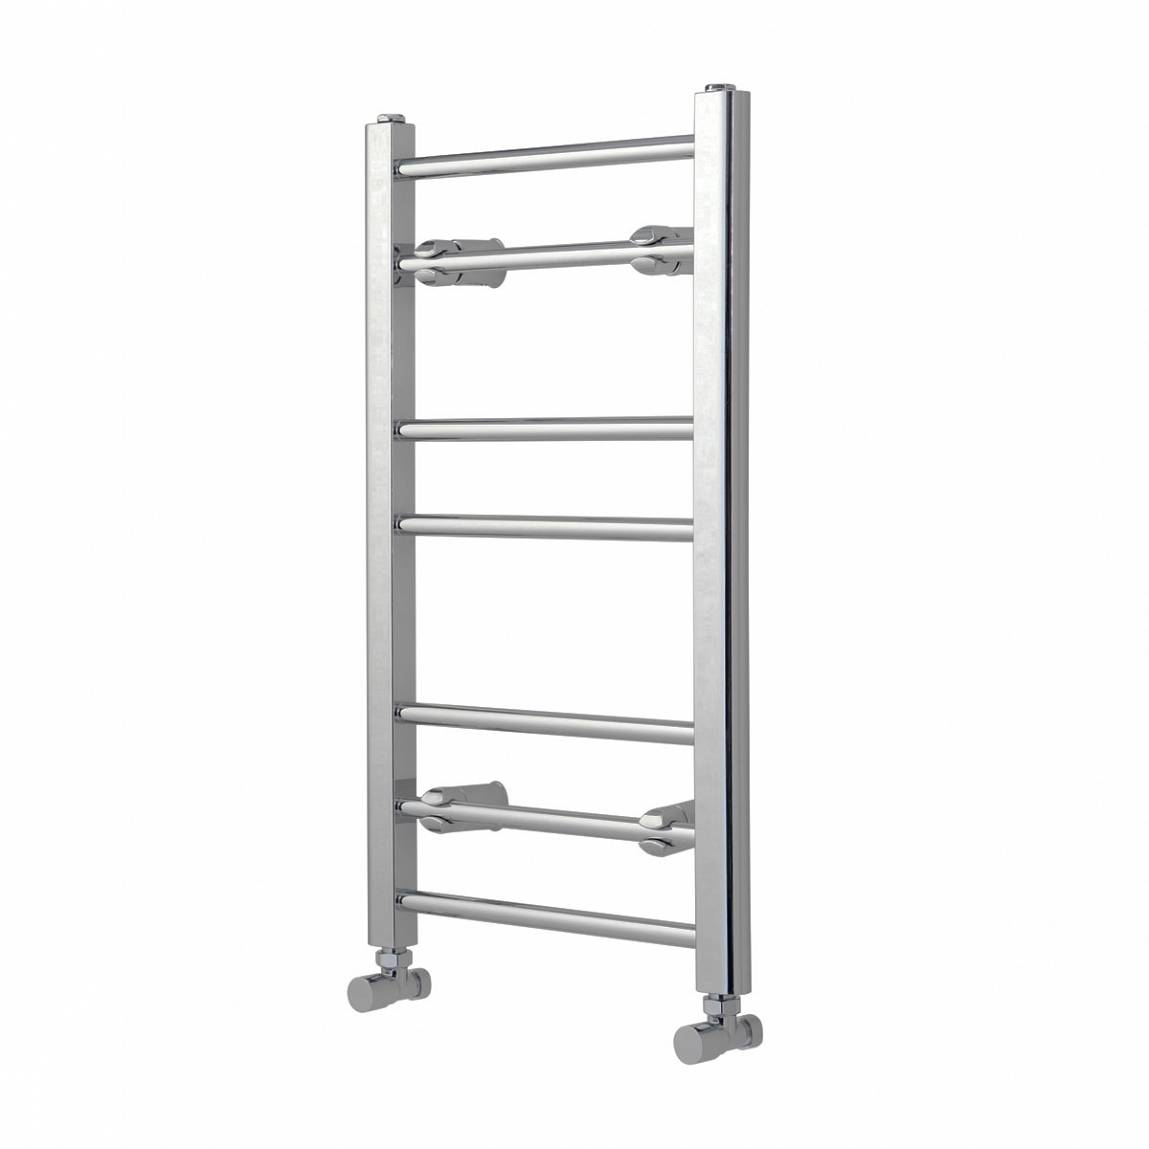 Image of Eco Heated Towel Rail 700 X 400